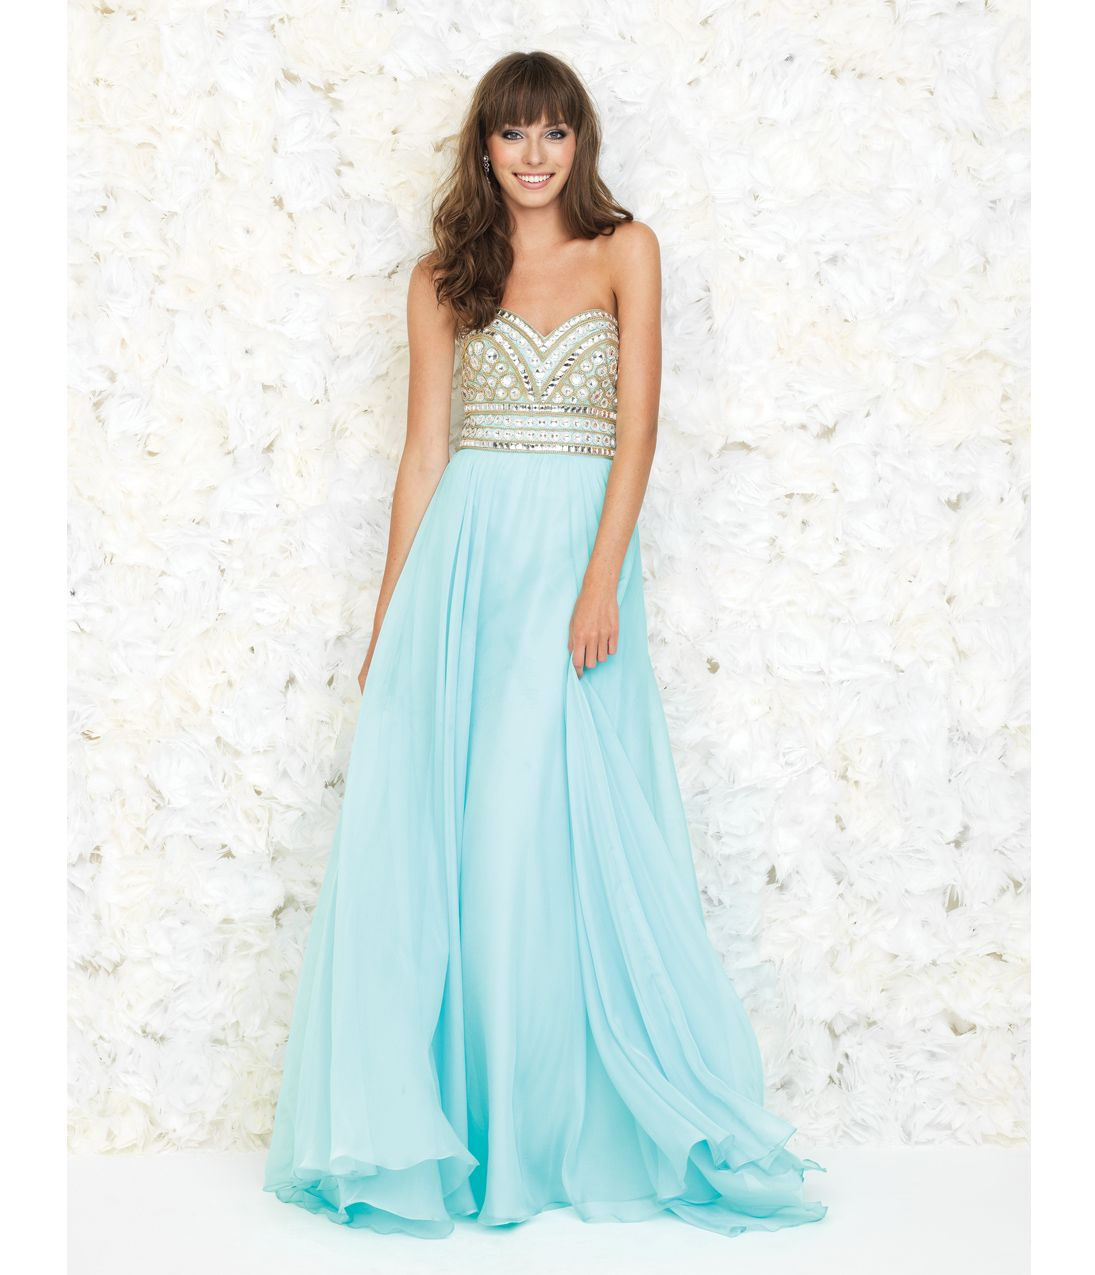 Water Blue Strapless Embellished Chiffon Gown | Long dress ...